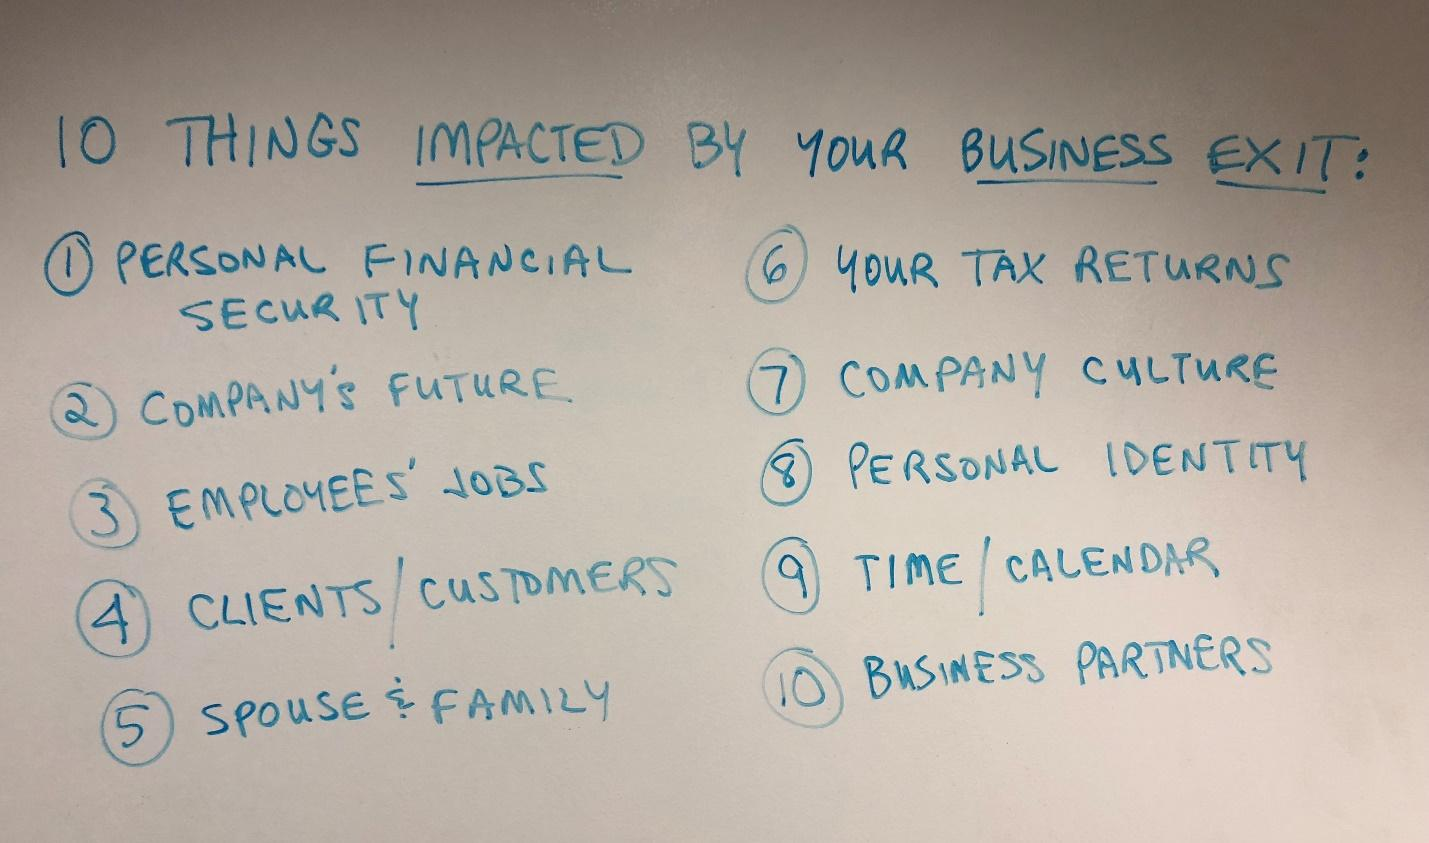 10 Things Impacted by Your Business Exit